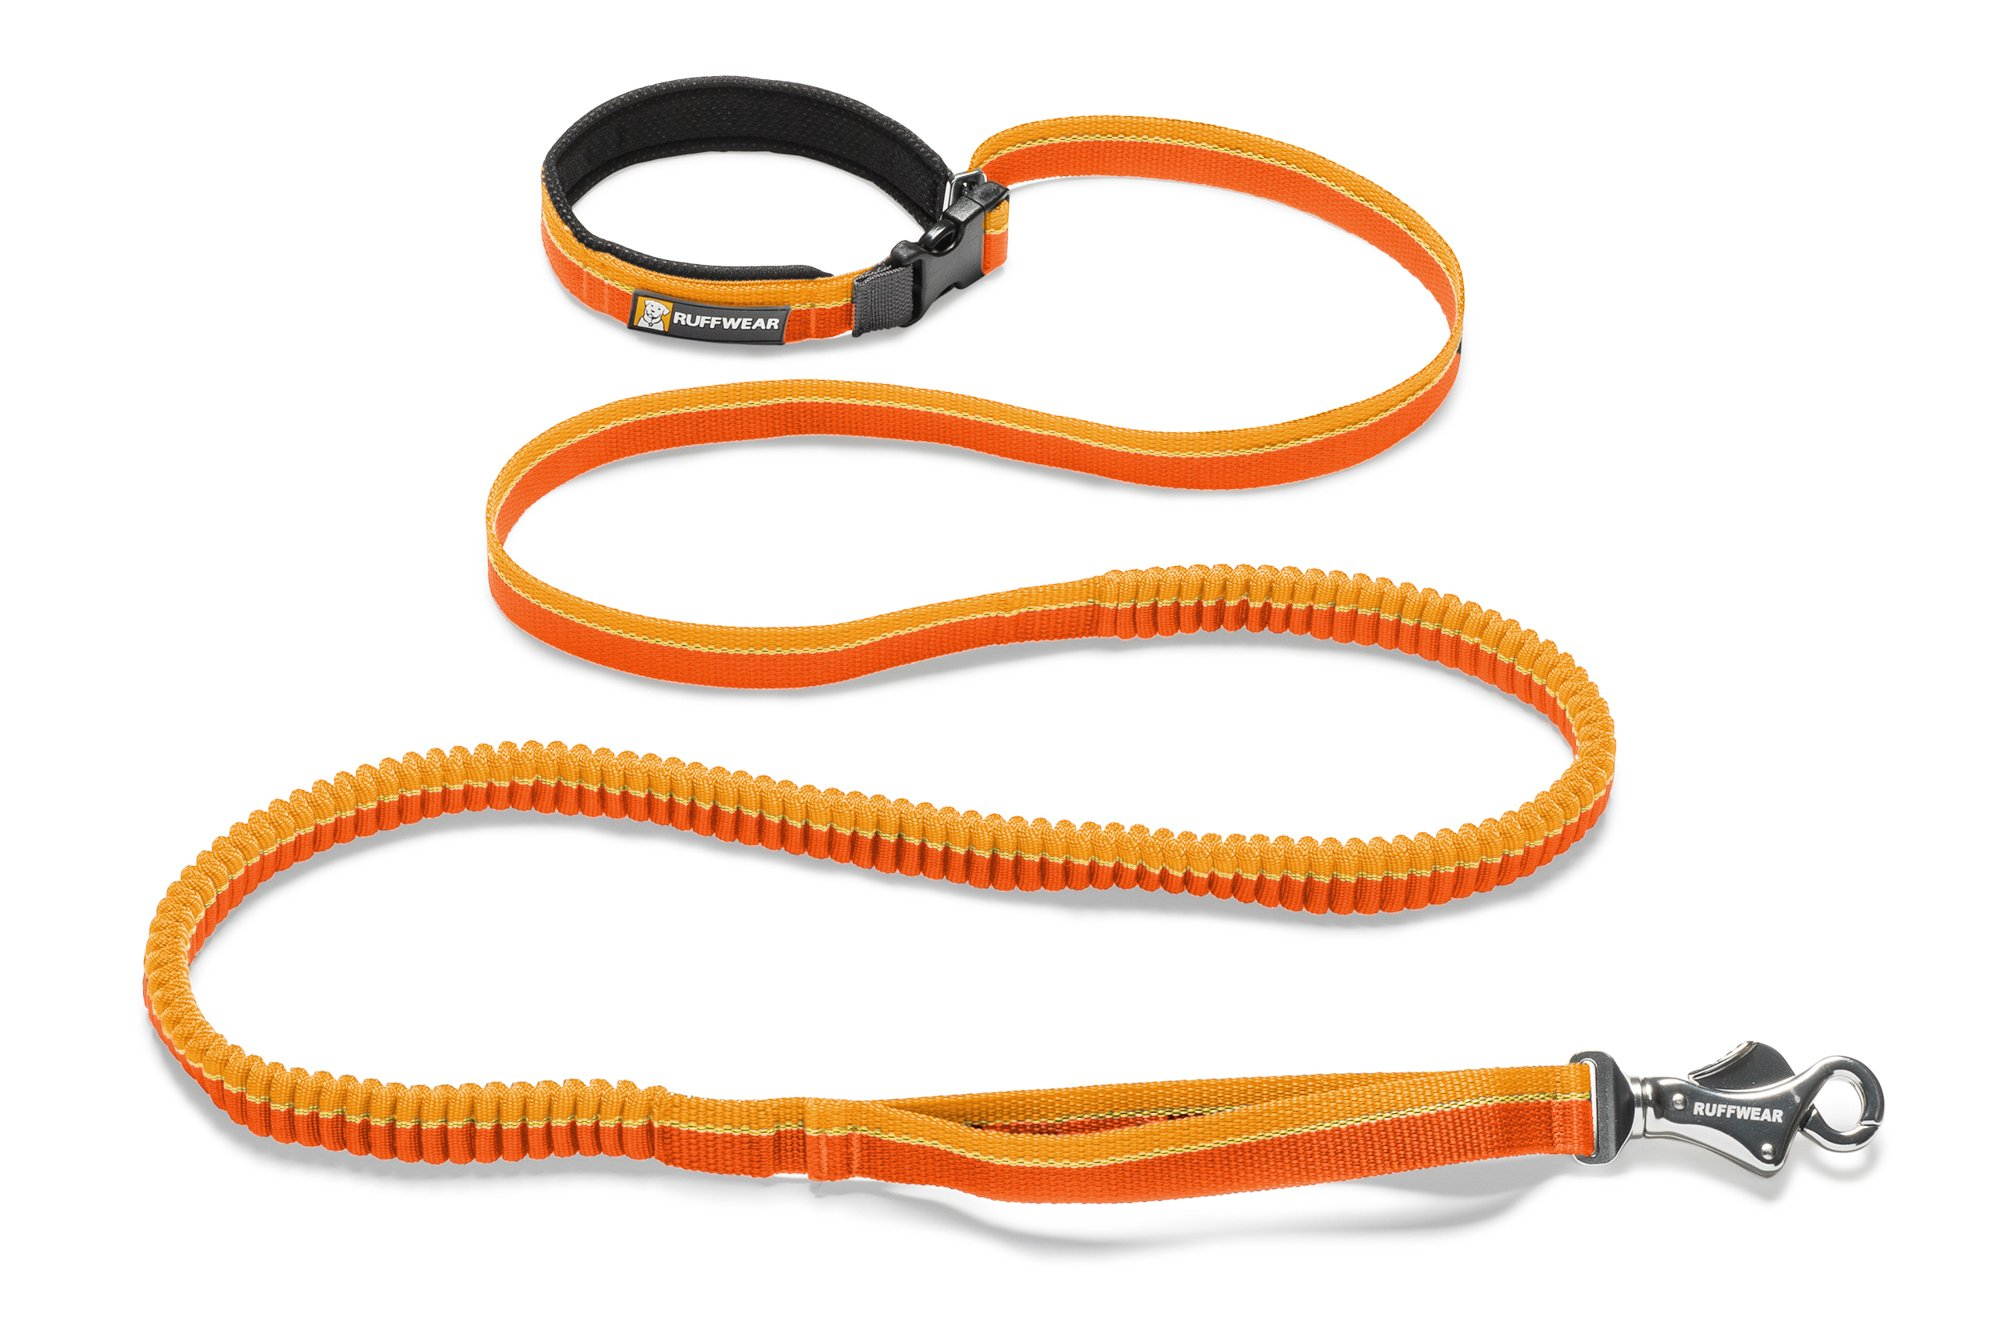 RUFFWEAR - Roamer Leash, Orange Sunset, Large